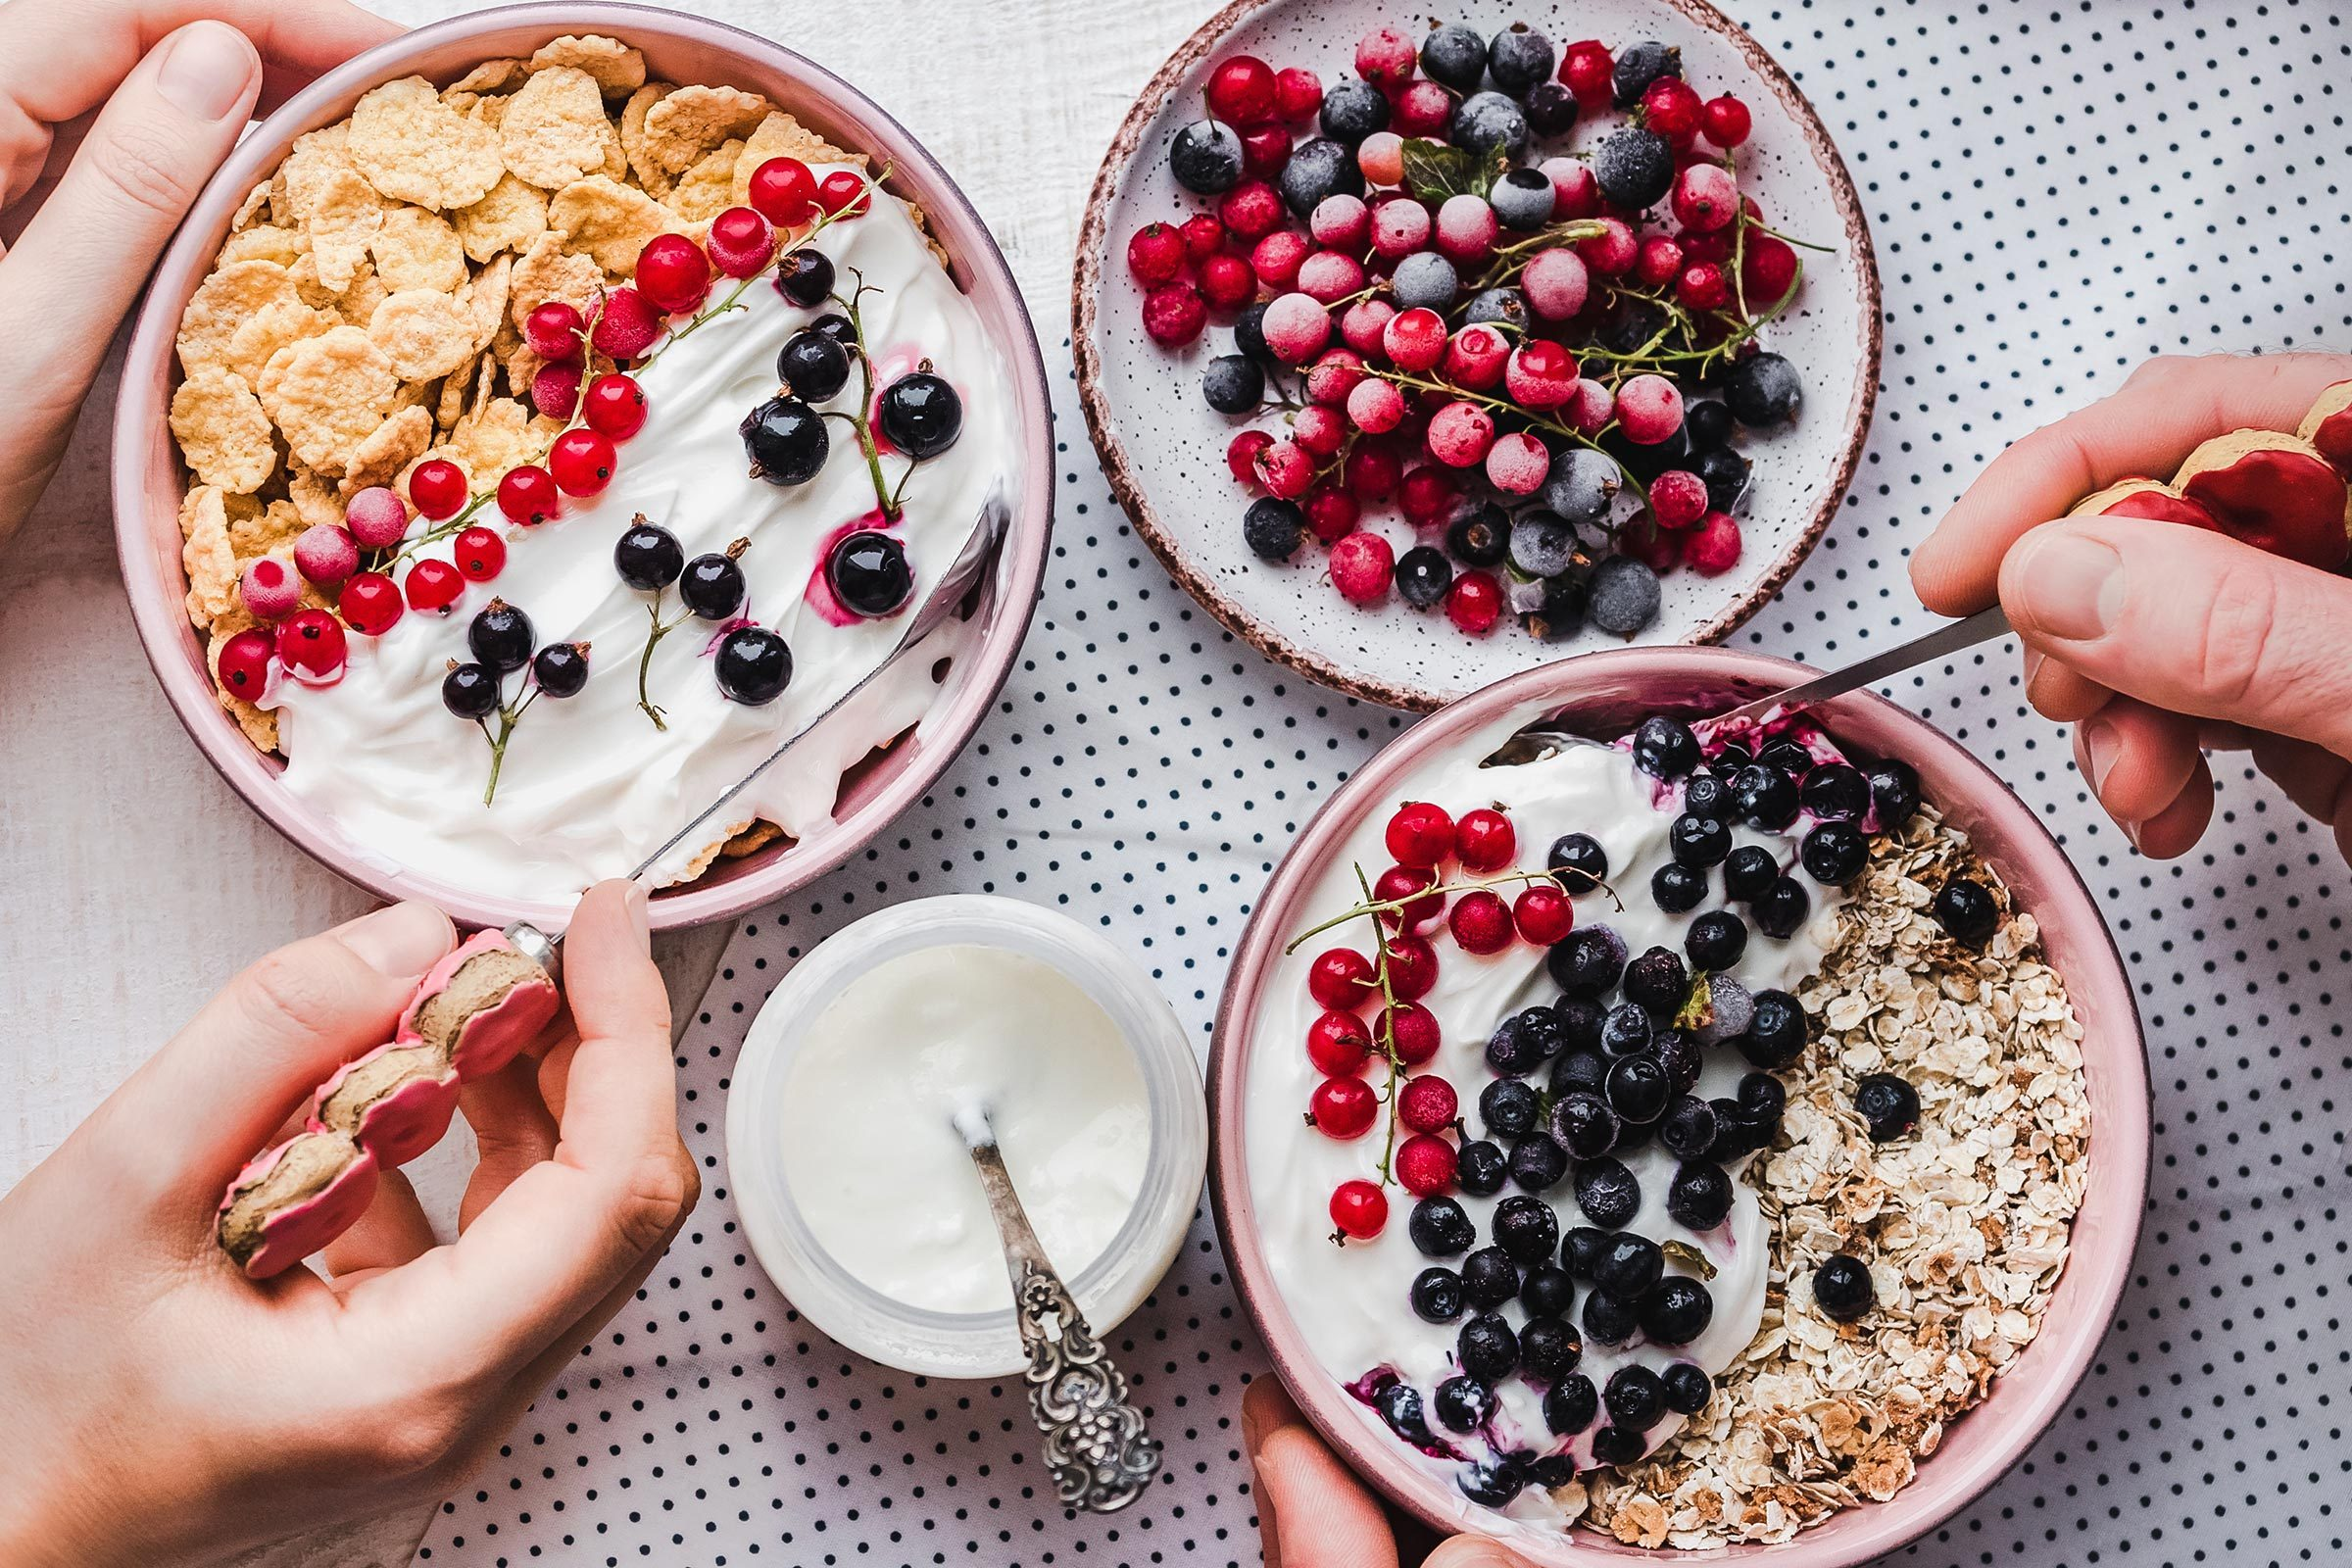 bowls of yogurt, berries, and cereal